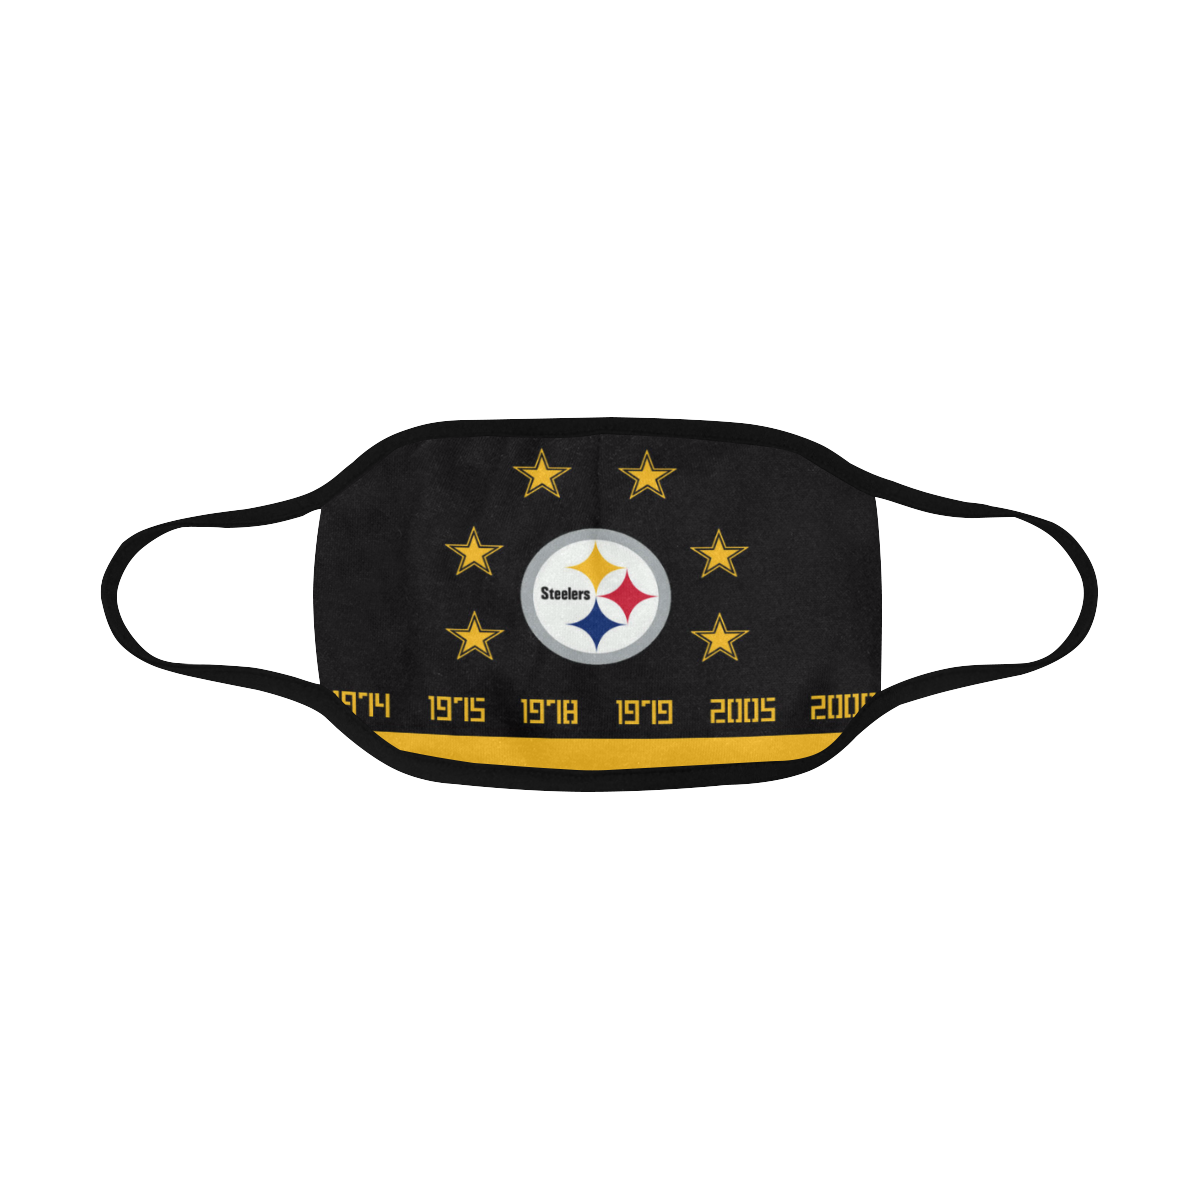 Pittsburgh Steelers Face Mask PM2.5